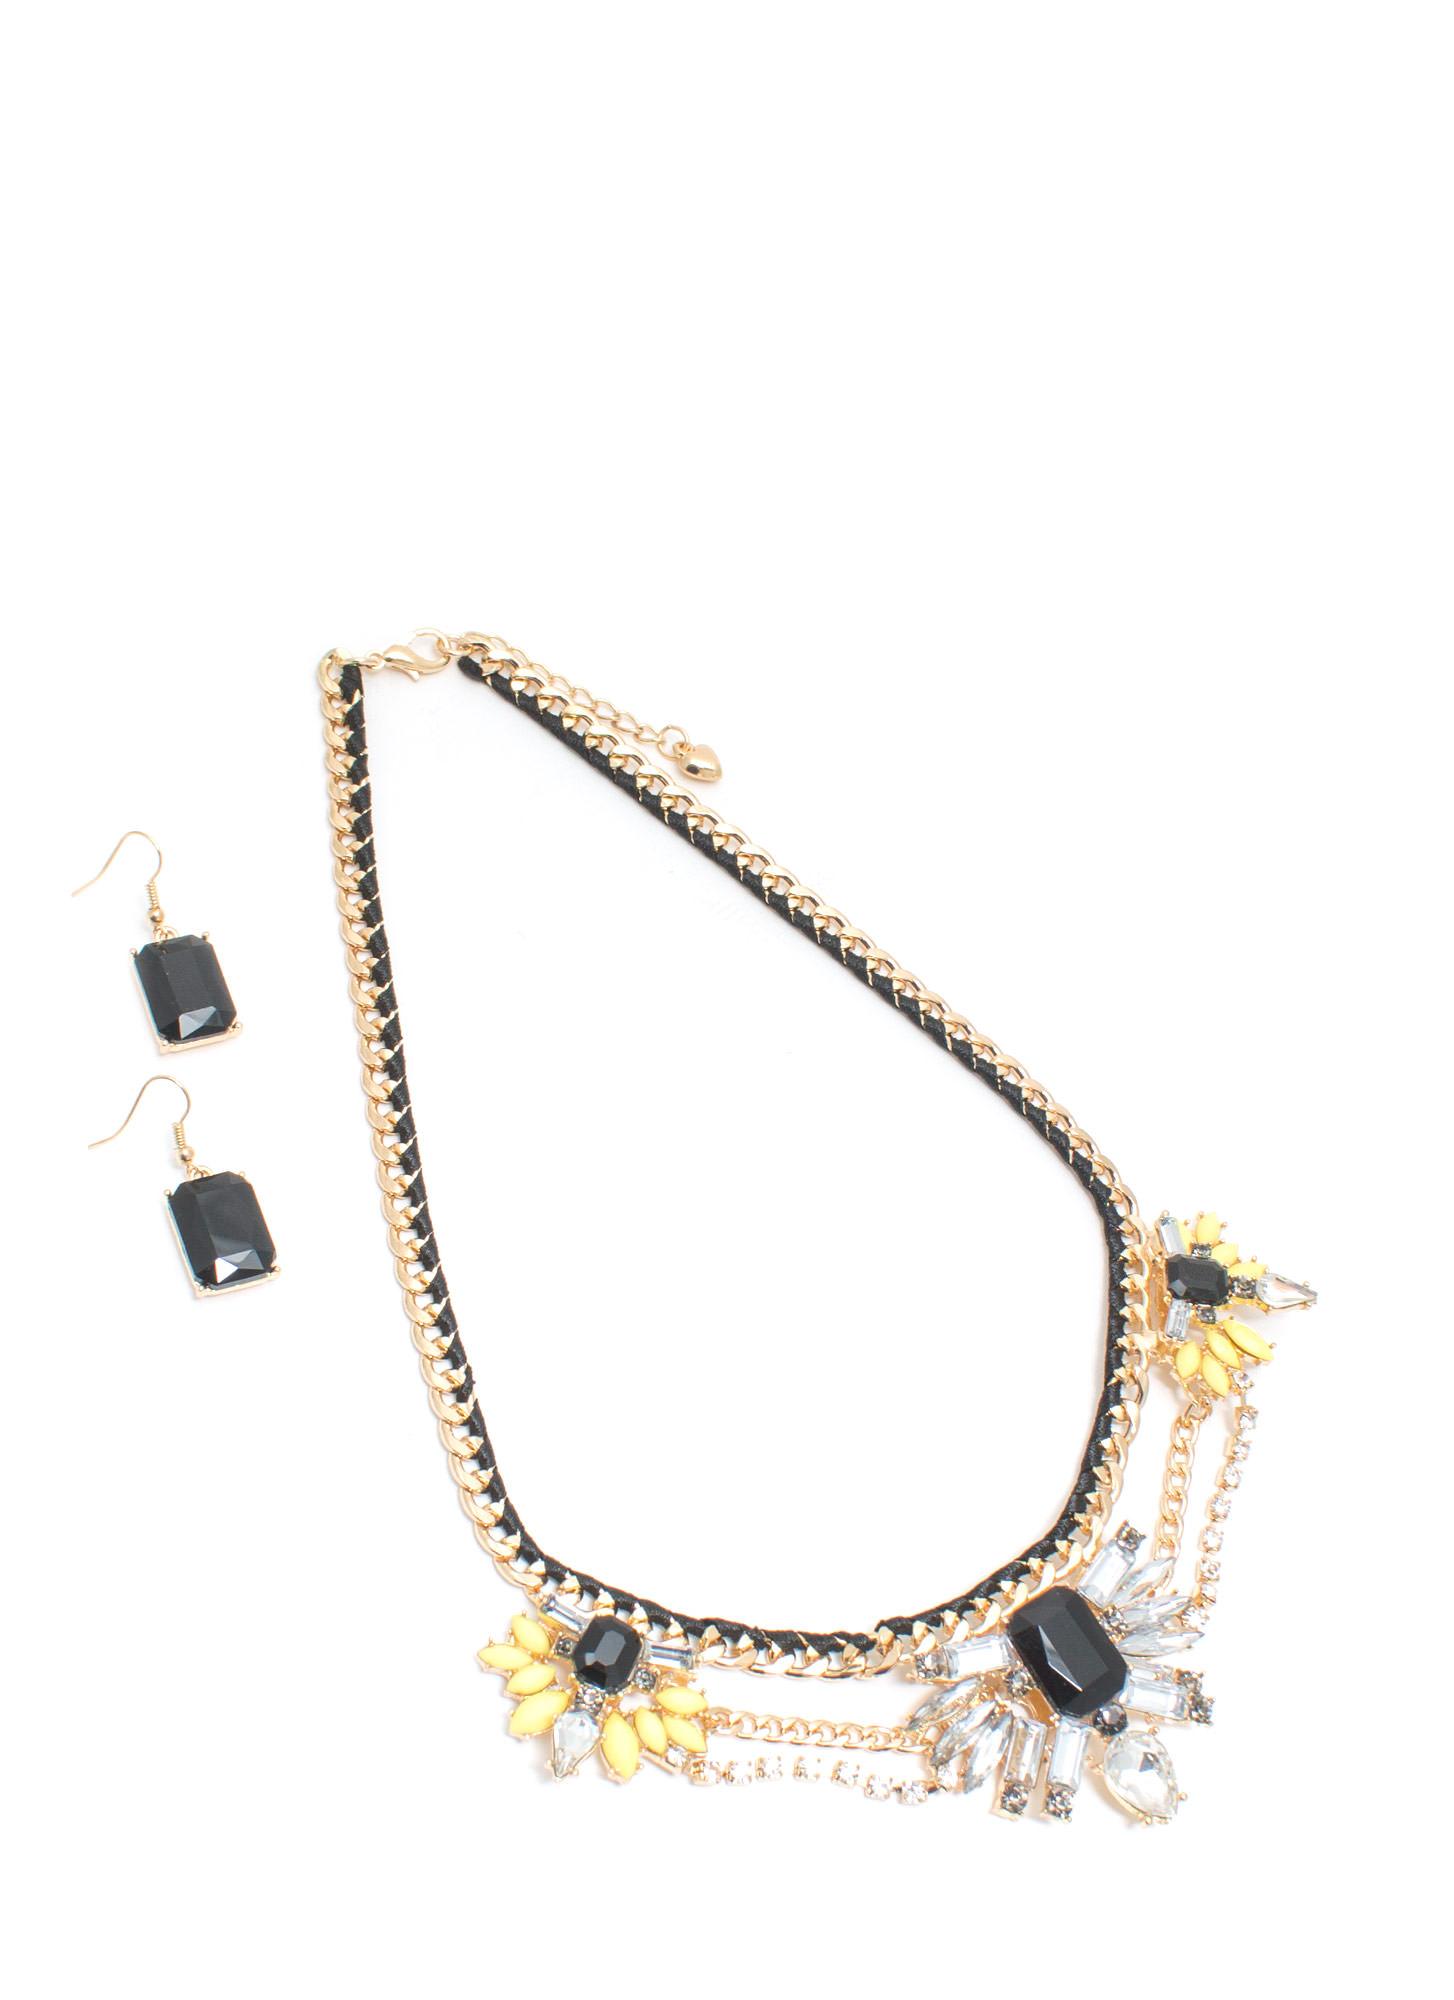 Garden Glamour Faux Jewel Necklace Set BLACKGOLD